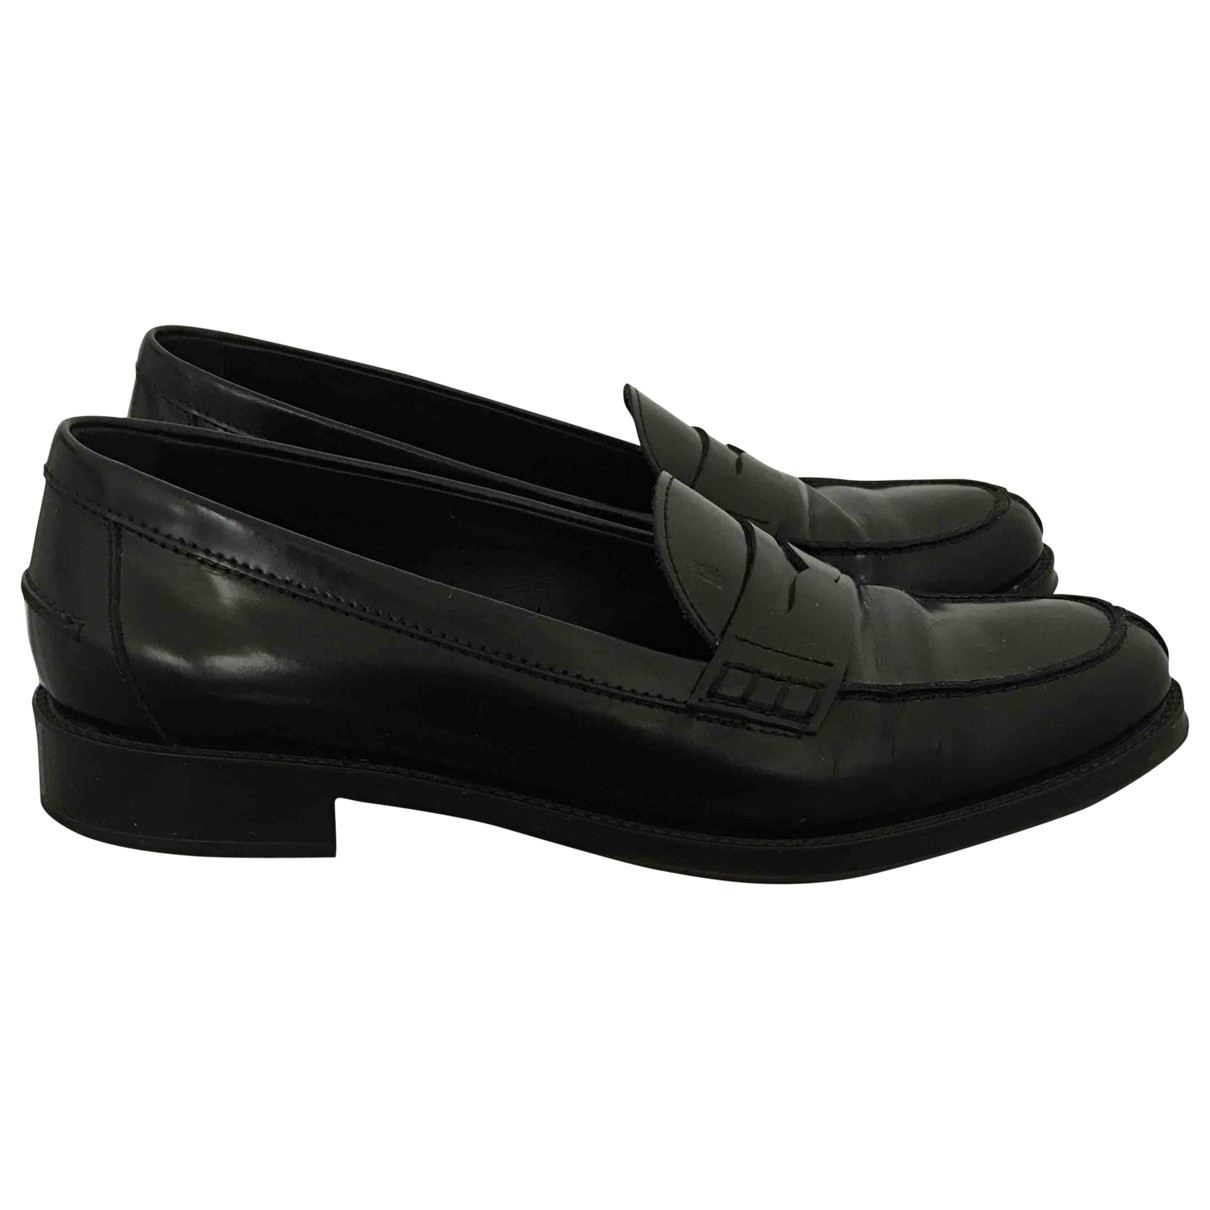 Tod's \N Black Leather Flats for Women 38.5 IT